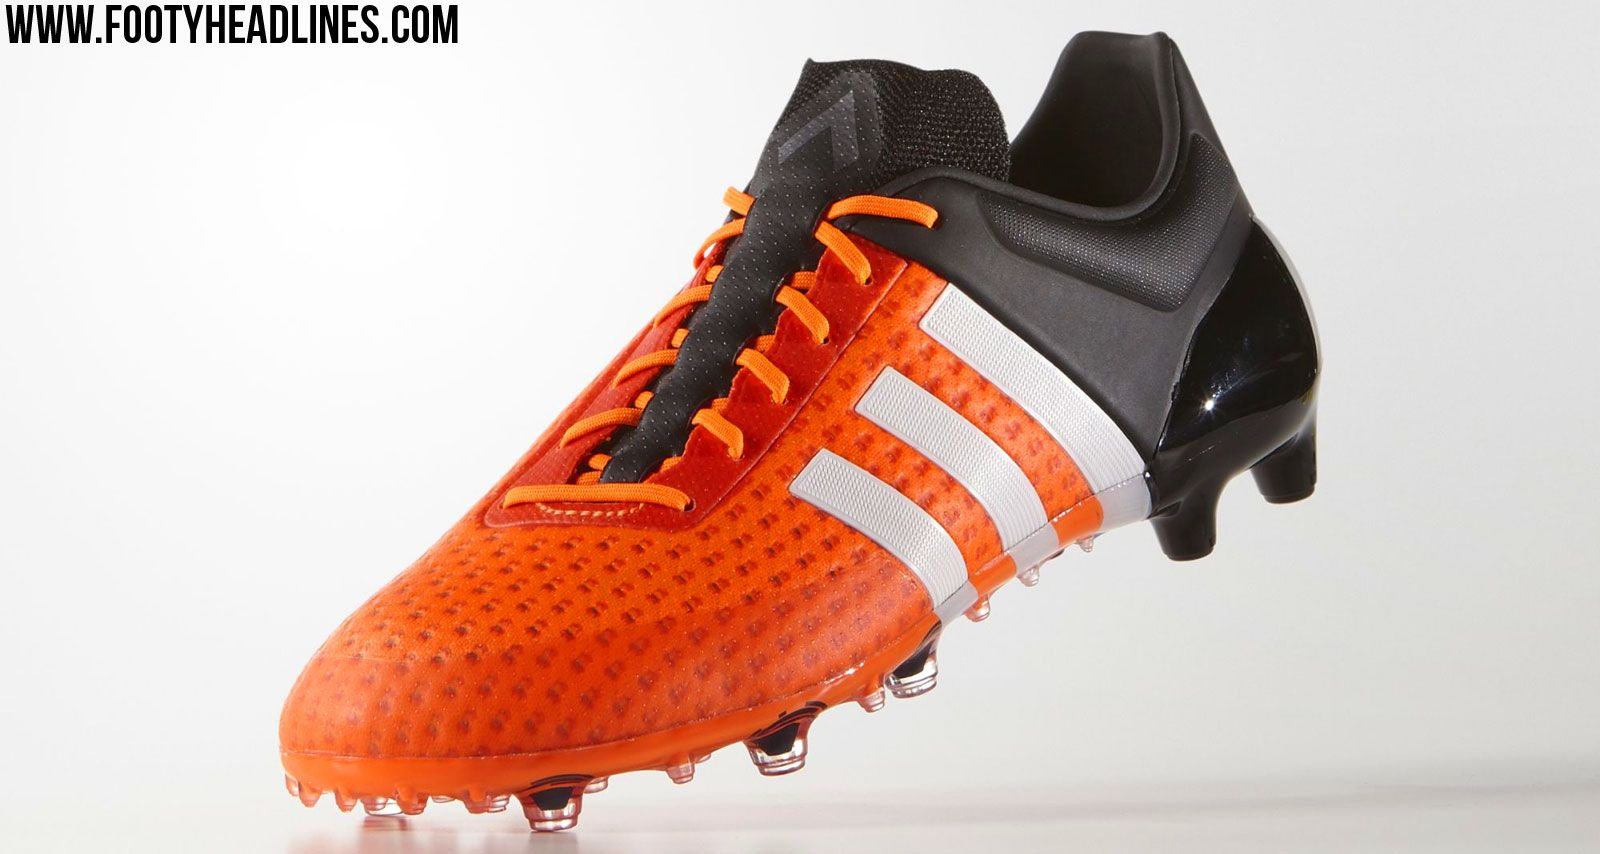 Adidas Ace 15 2015 Primeknit Boots Leaked Footy